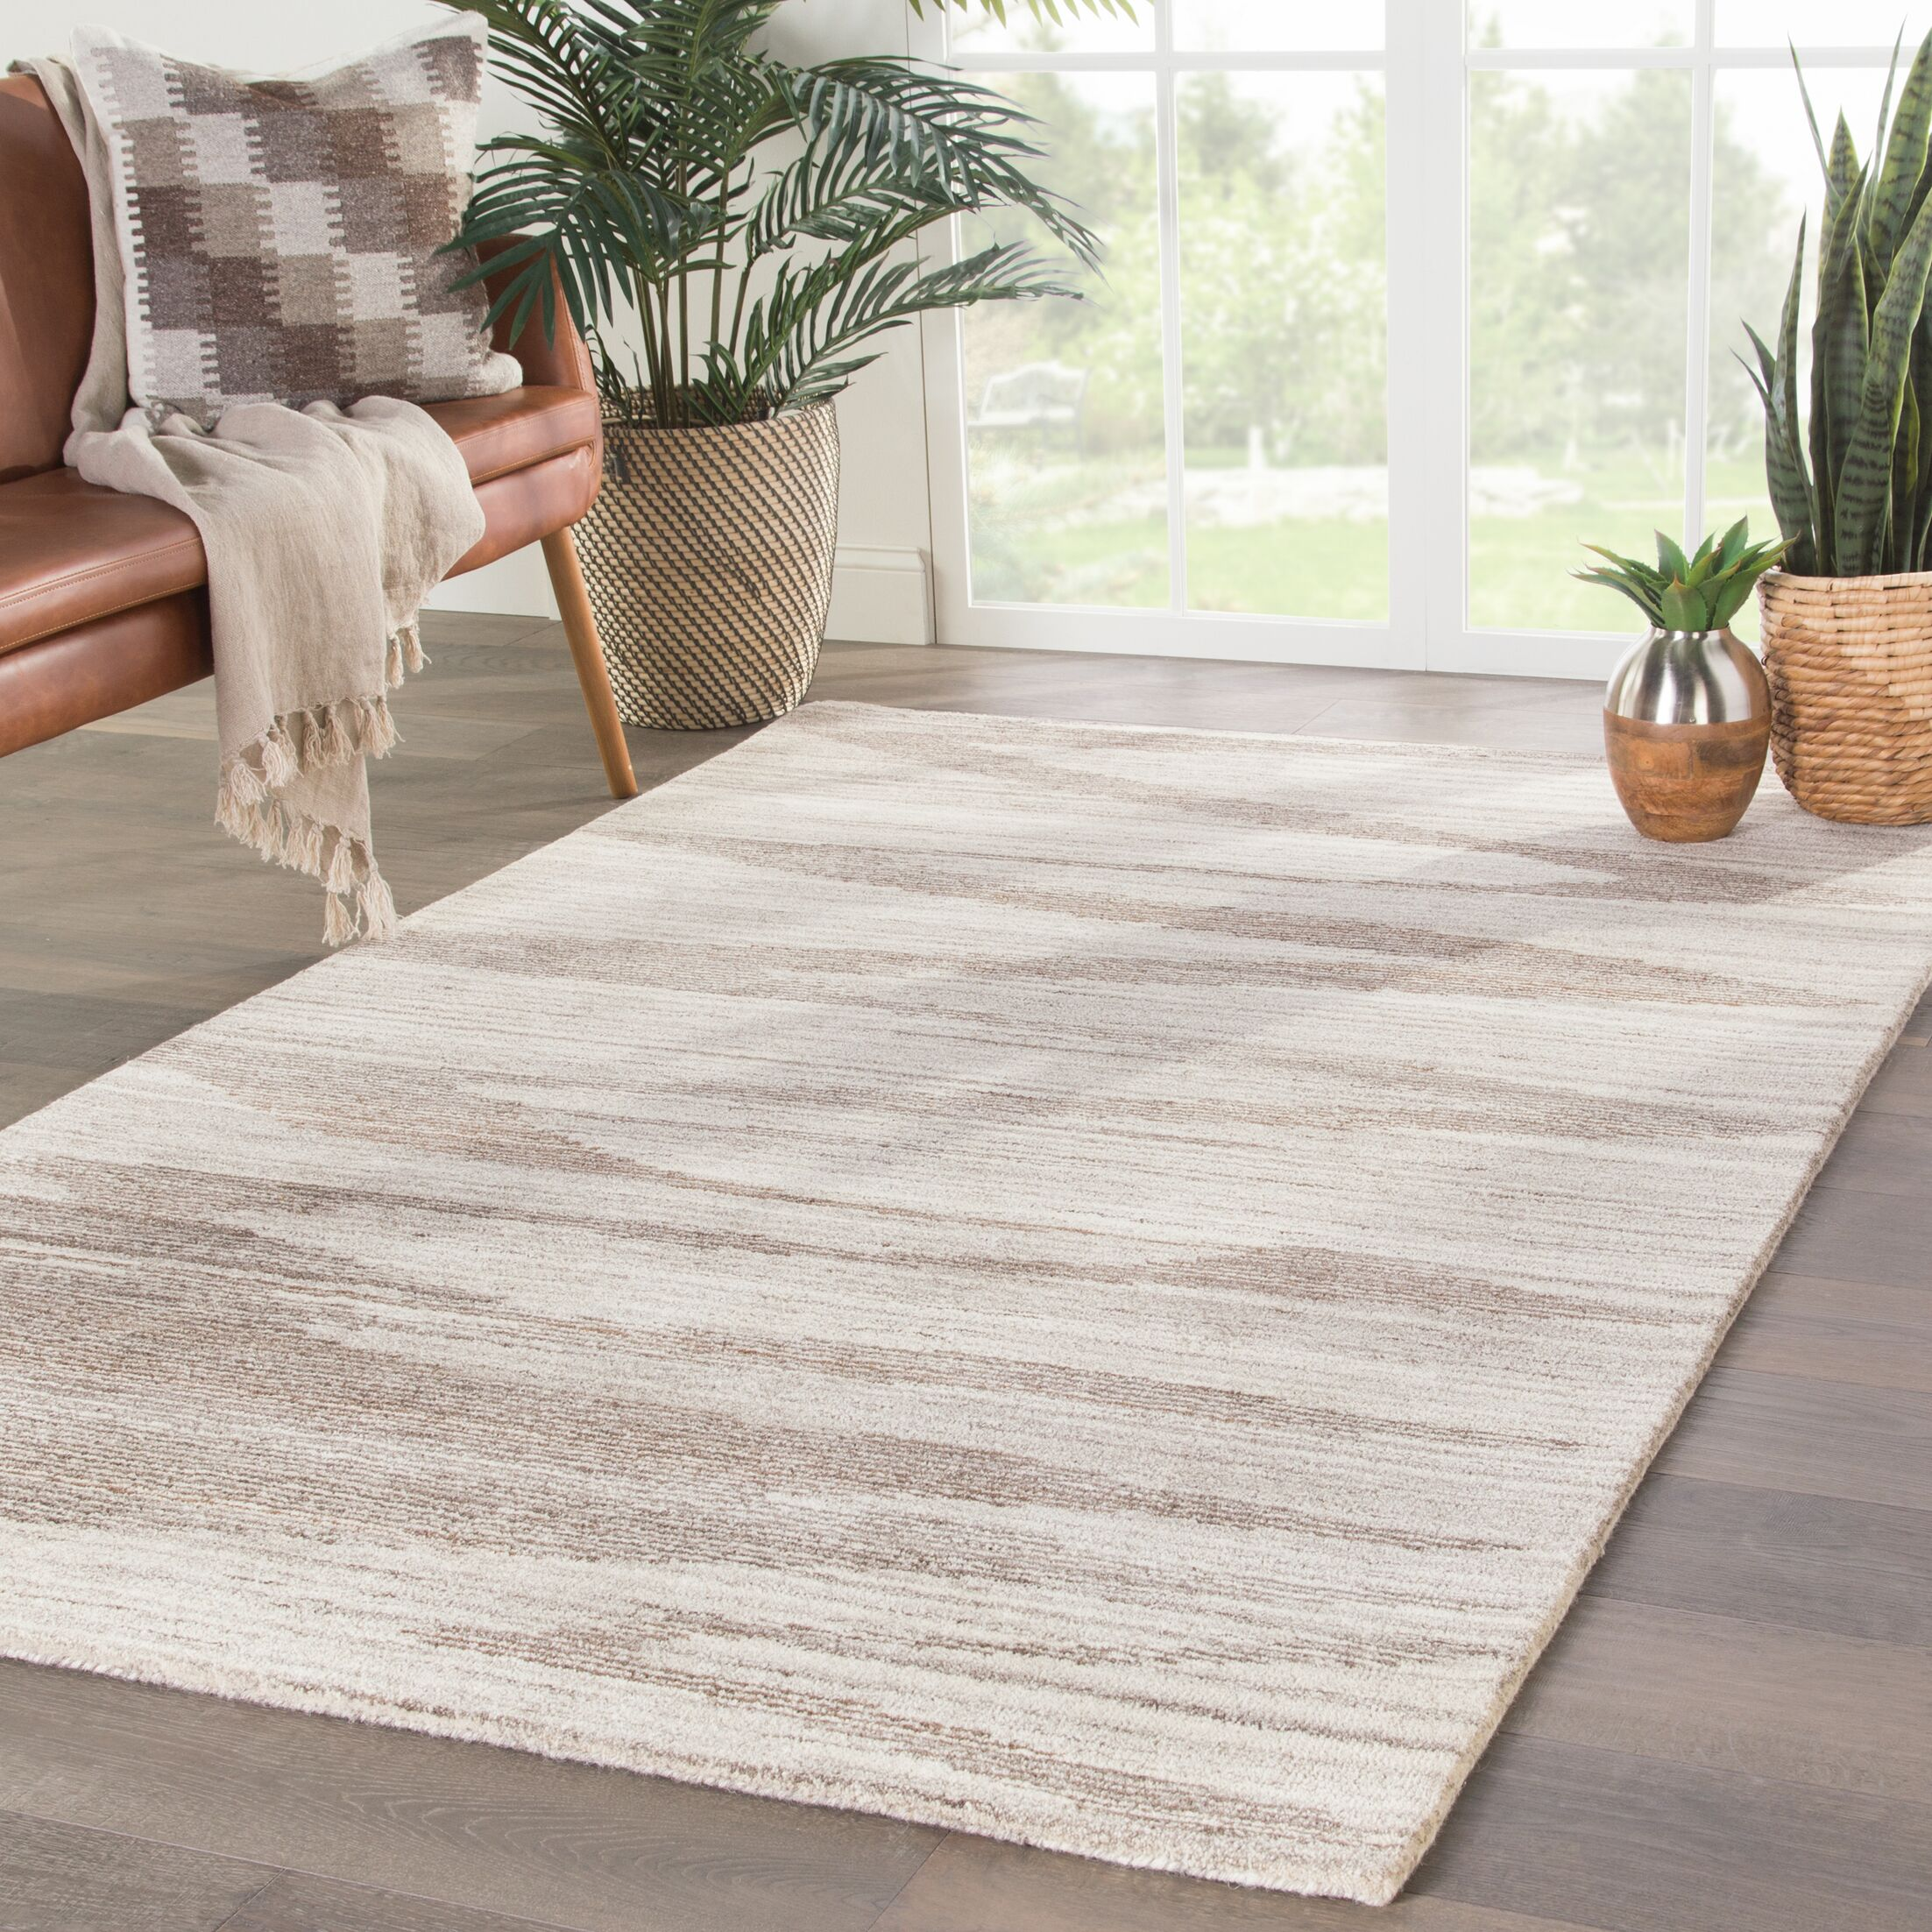 Paquette Hand-Tufted Wool Beige/Brown Area Rug Rug Size: Rectangle 2' x 3'